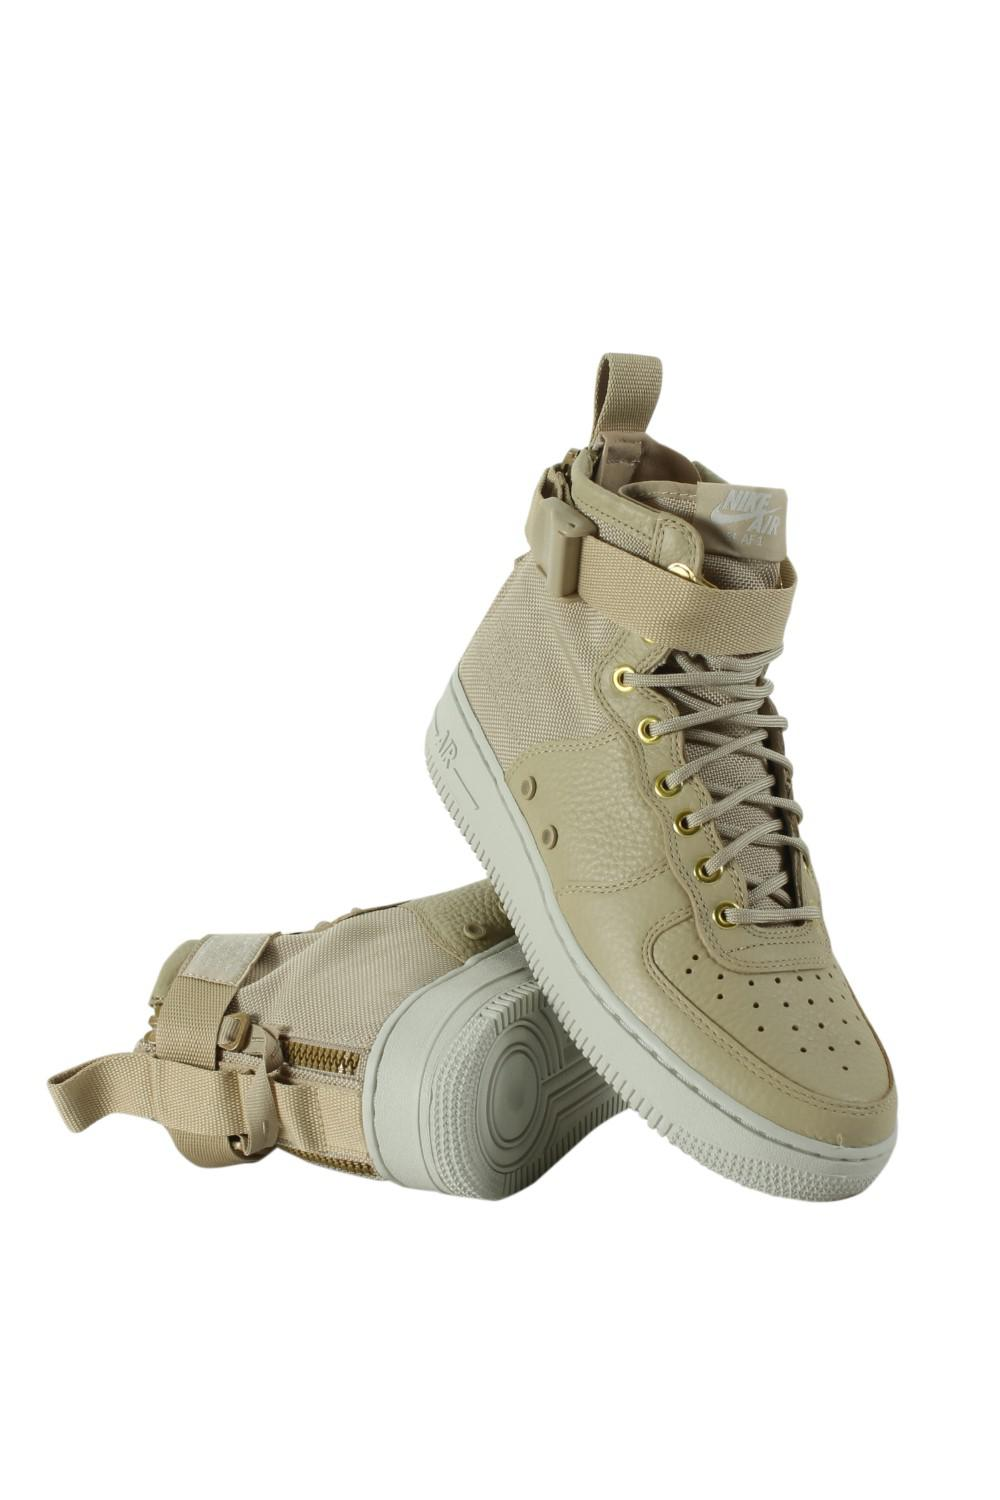 0cfd4850ffa6 Lyst - Nike Sf Air Force 1 Mid Shoes Aa3966-200 in Green